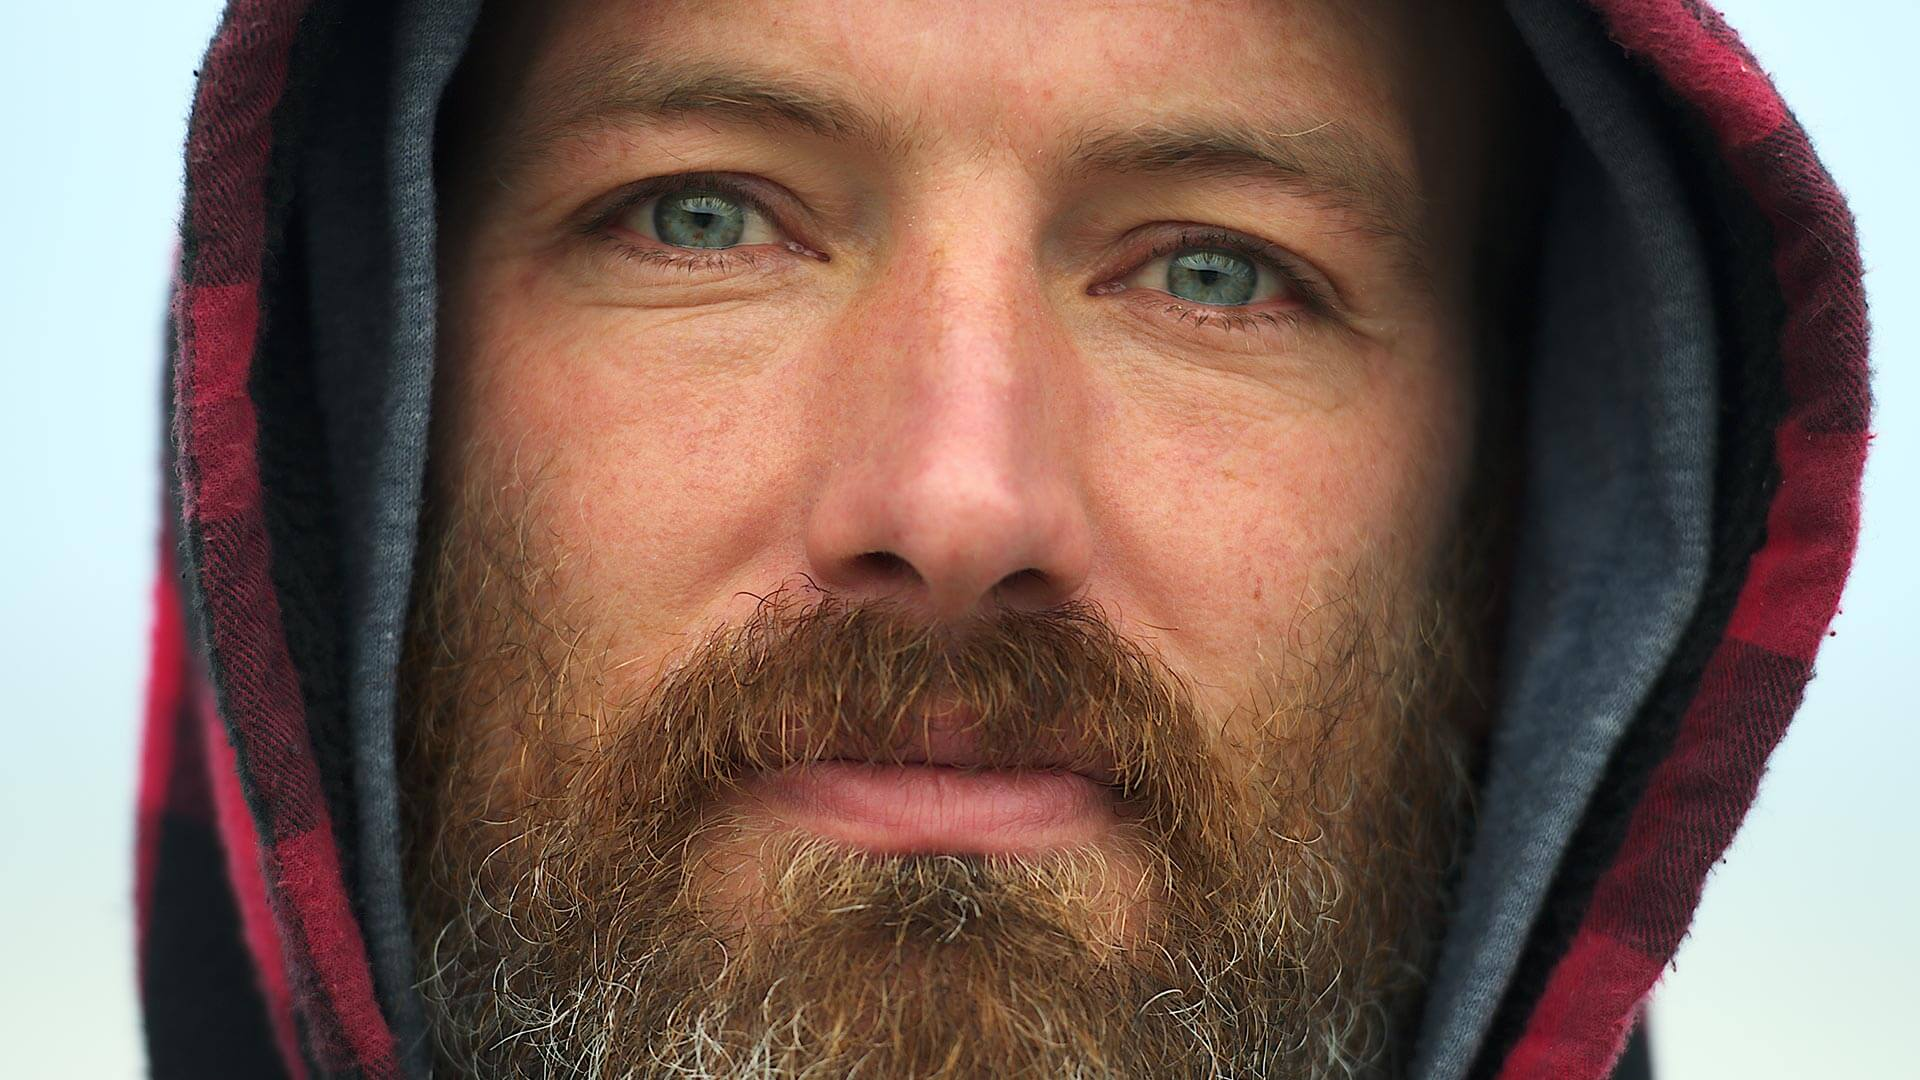 Close up portrait of man with beard and red checker hood - structure effect before